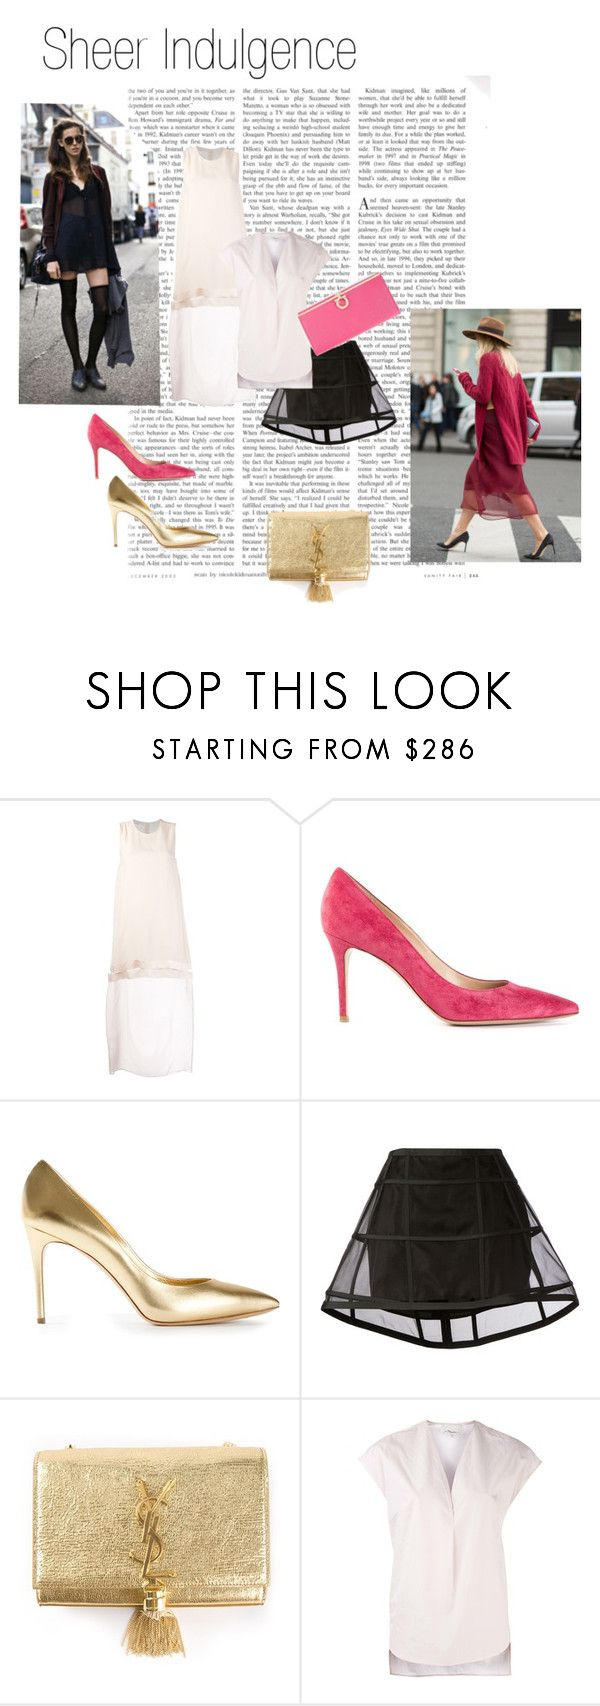 """""""Sheer Indulgence"""" by farfetch ❤ liked on Polyvore featuring STELLA McCARTNEY, Gianvito Rossi, Casadei, Peter Pilotto, Yves Saint Laurent, 3.1 Phillip Lim and Salvatore Ferragamo"""